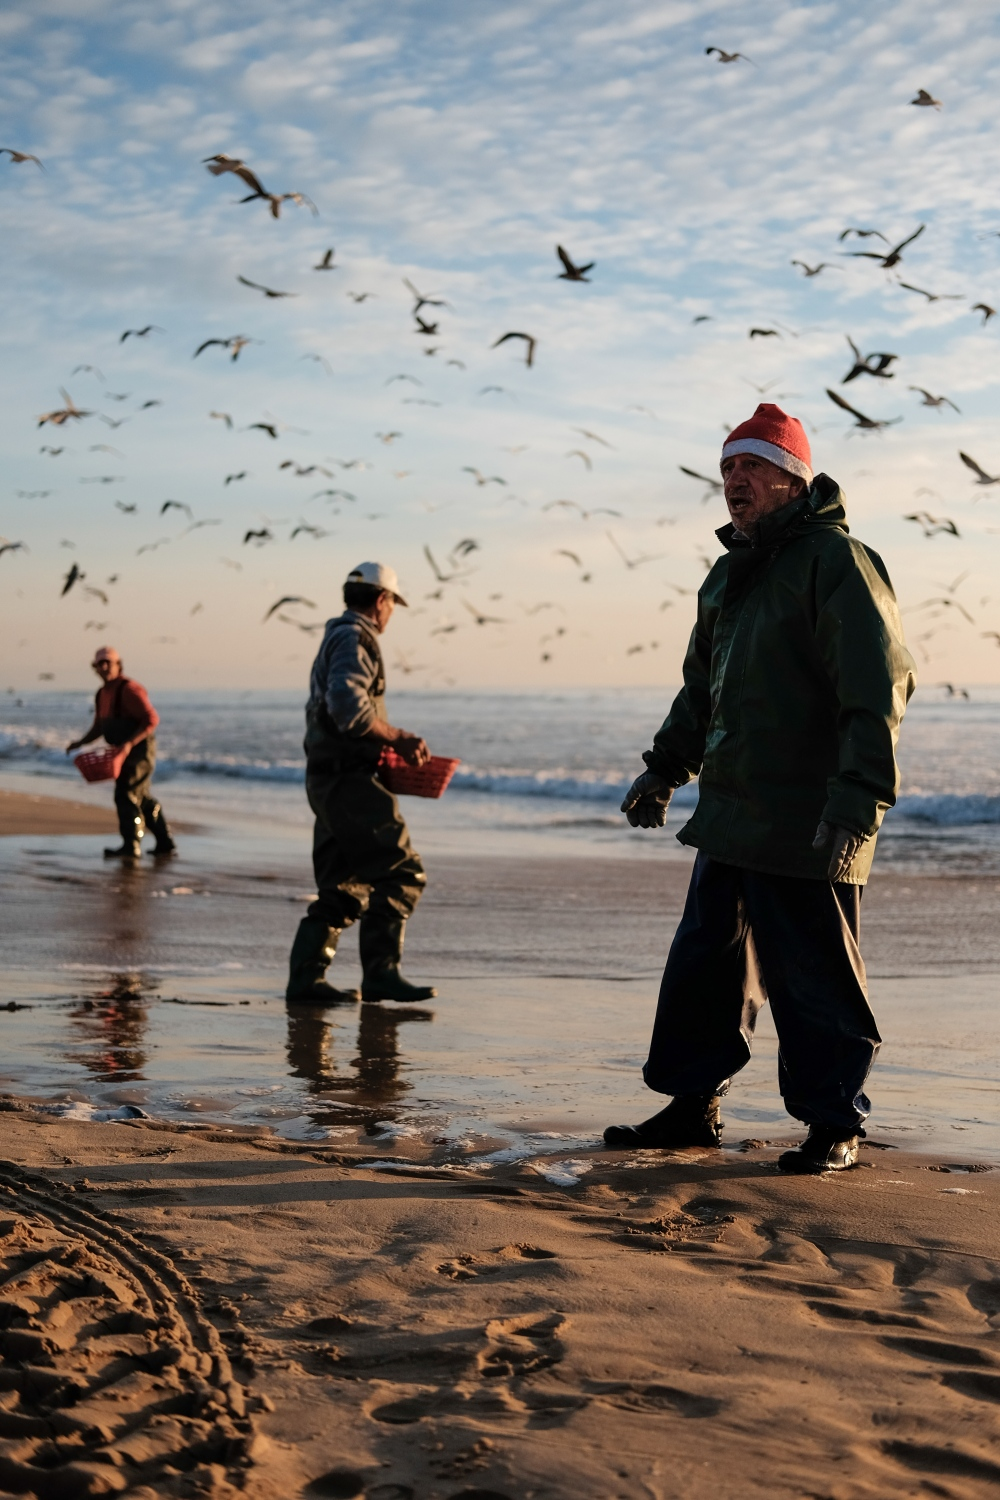 Fishermen keep going until there are practically no fish left in the sand.